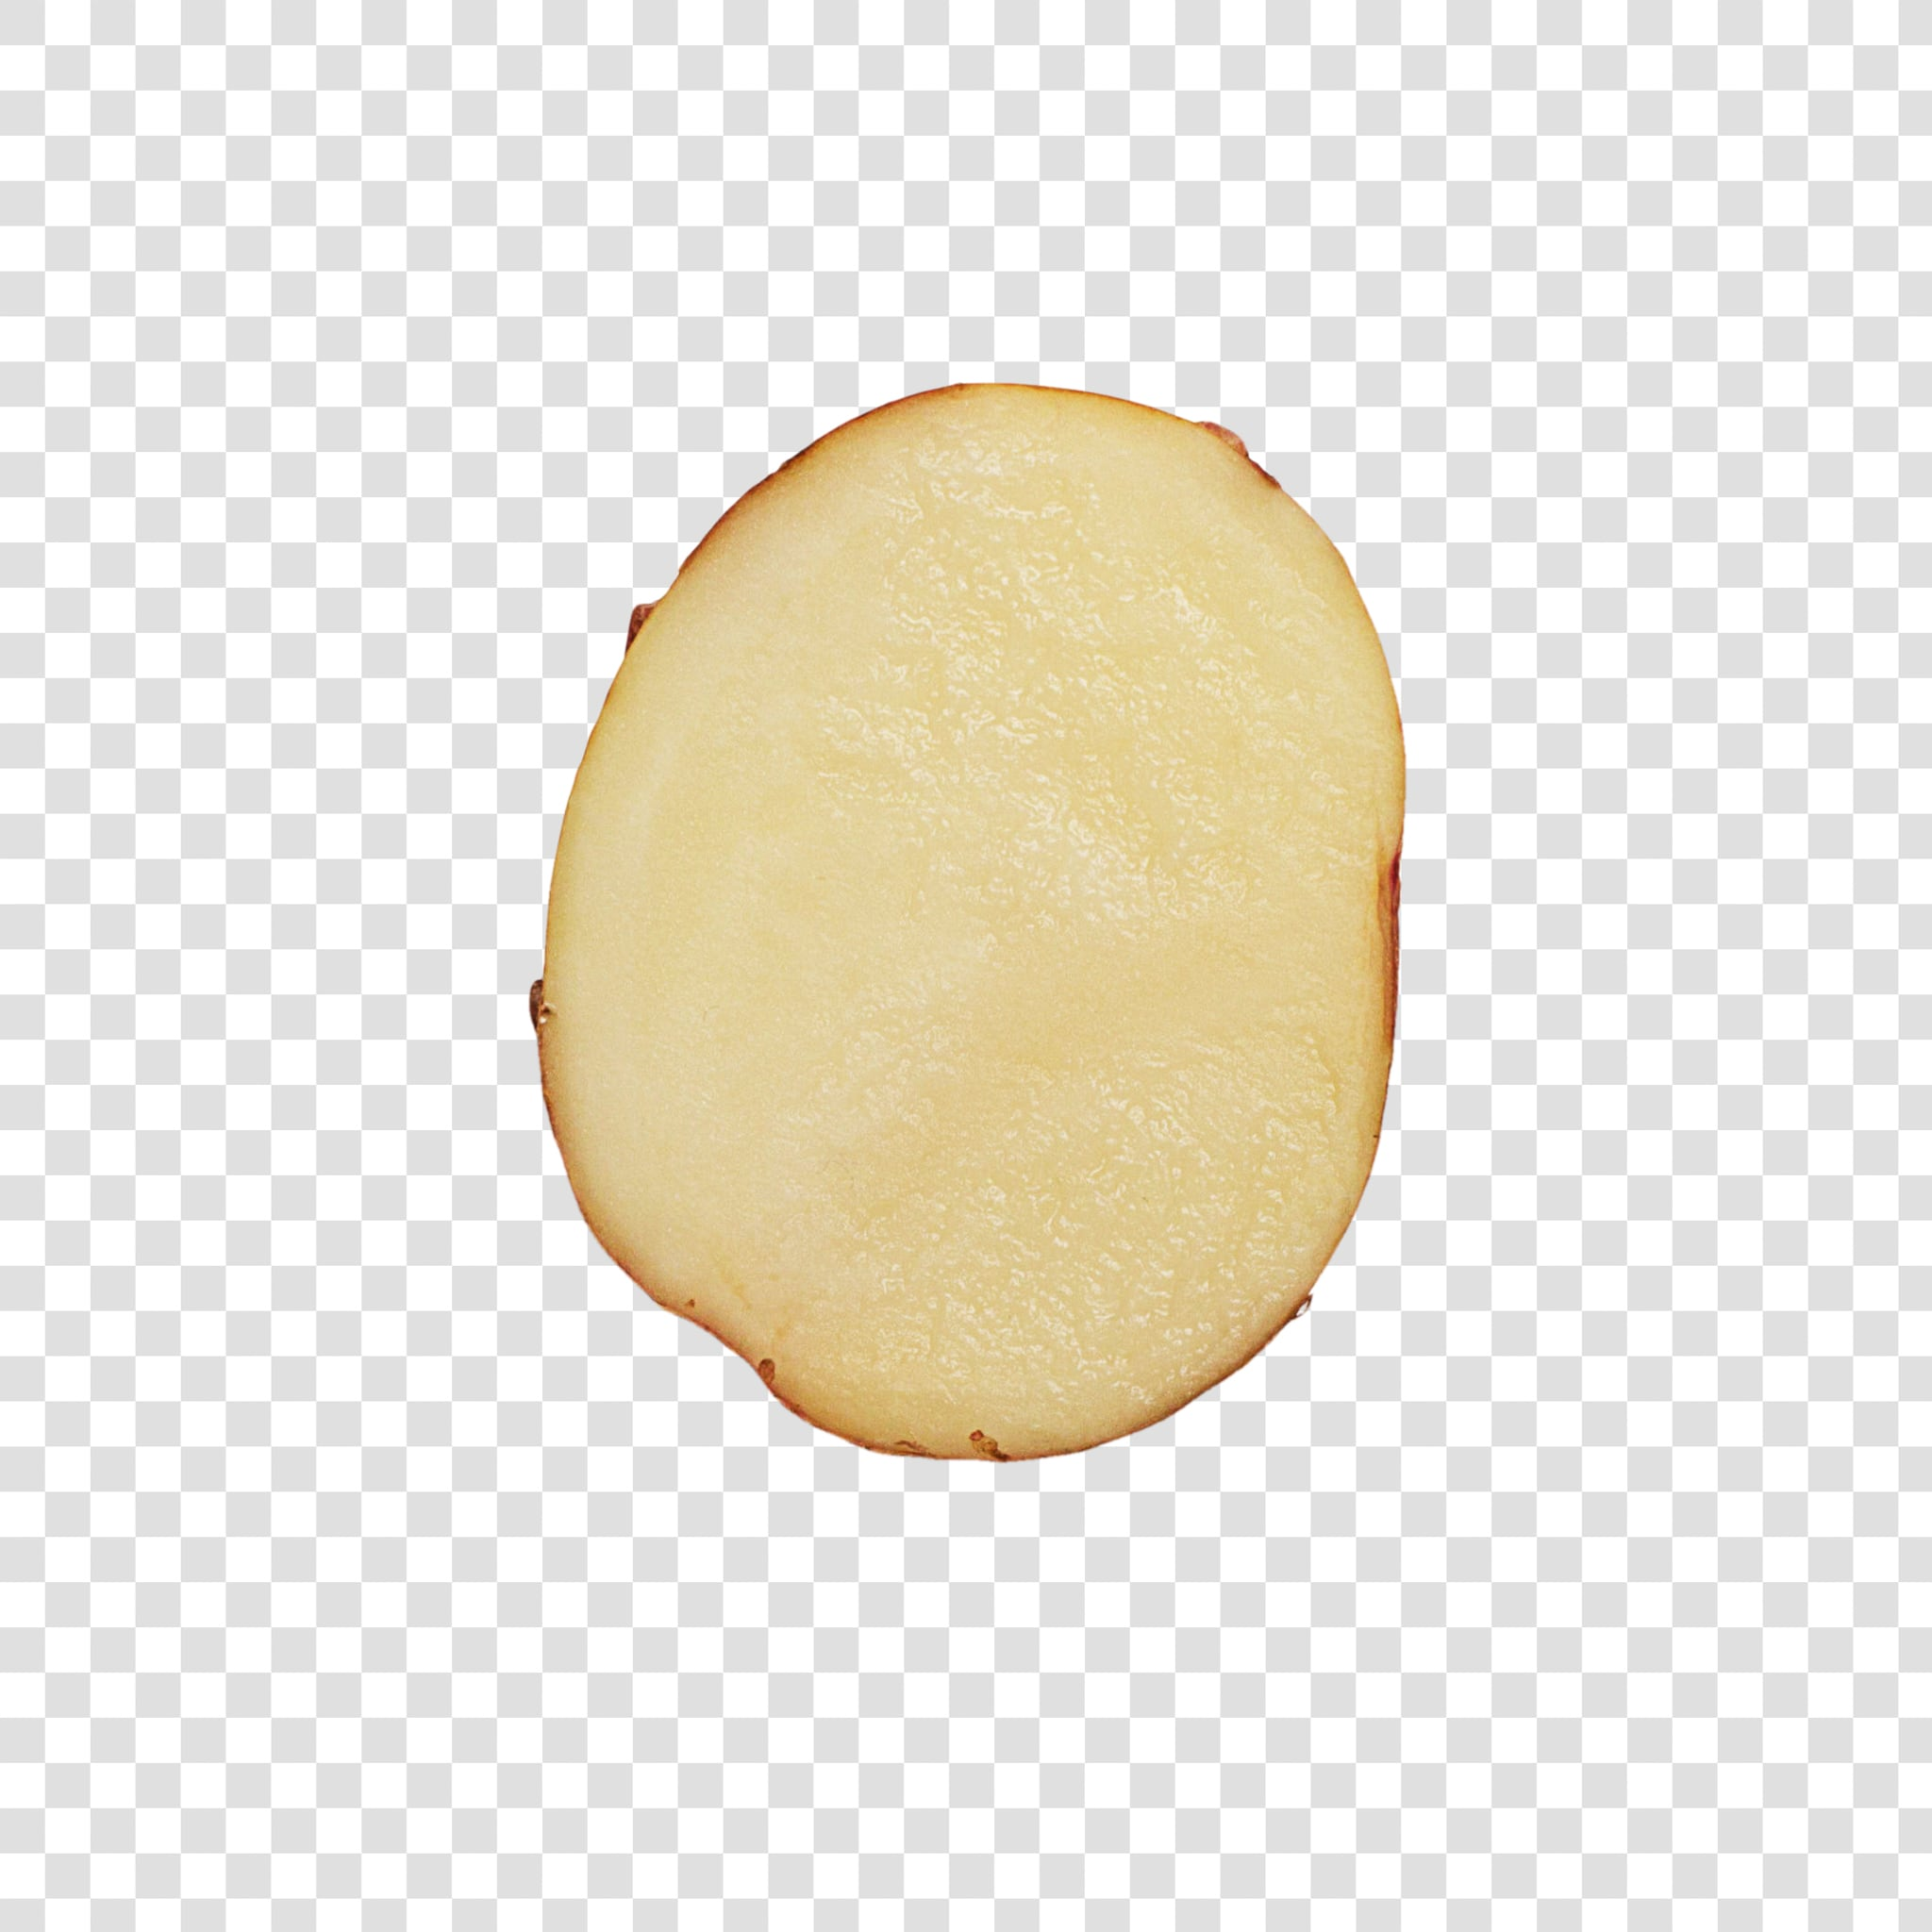 Potato image with transparent background